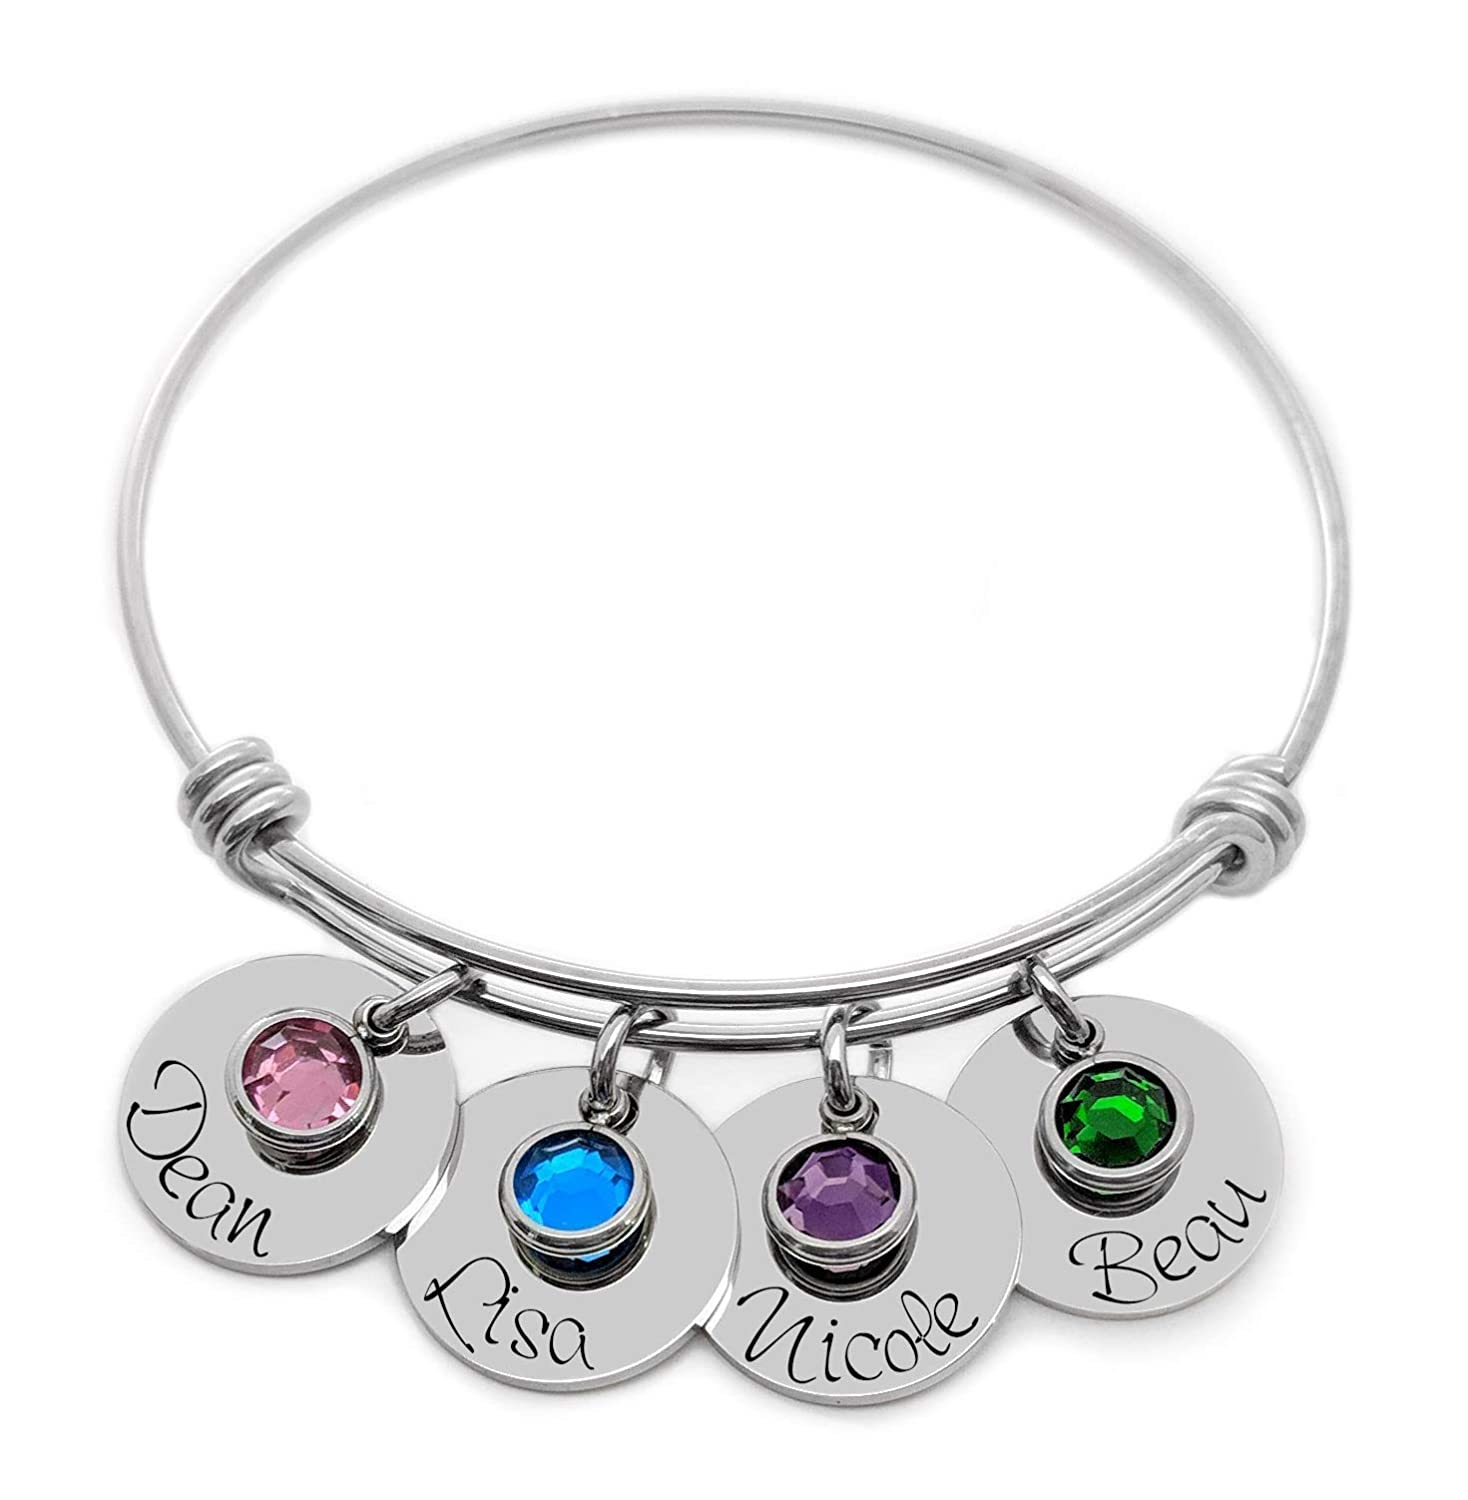 a7cb1462f56d8 Birthstone Jewelry Mothers Bracelet with kids names Personalized Engraved  Gift For Mom Gift From Kids